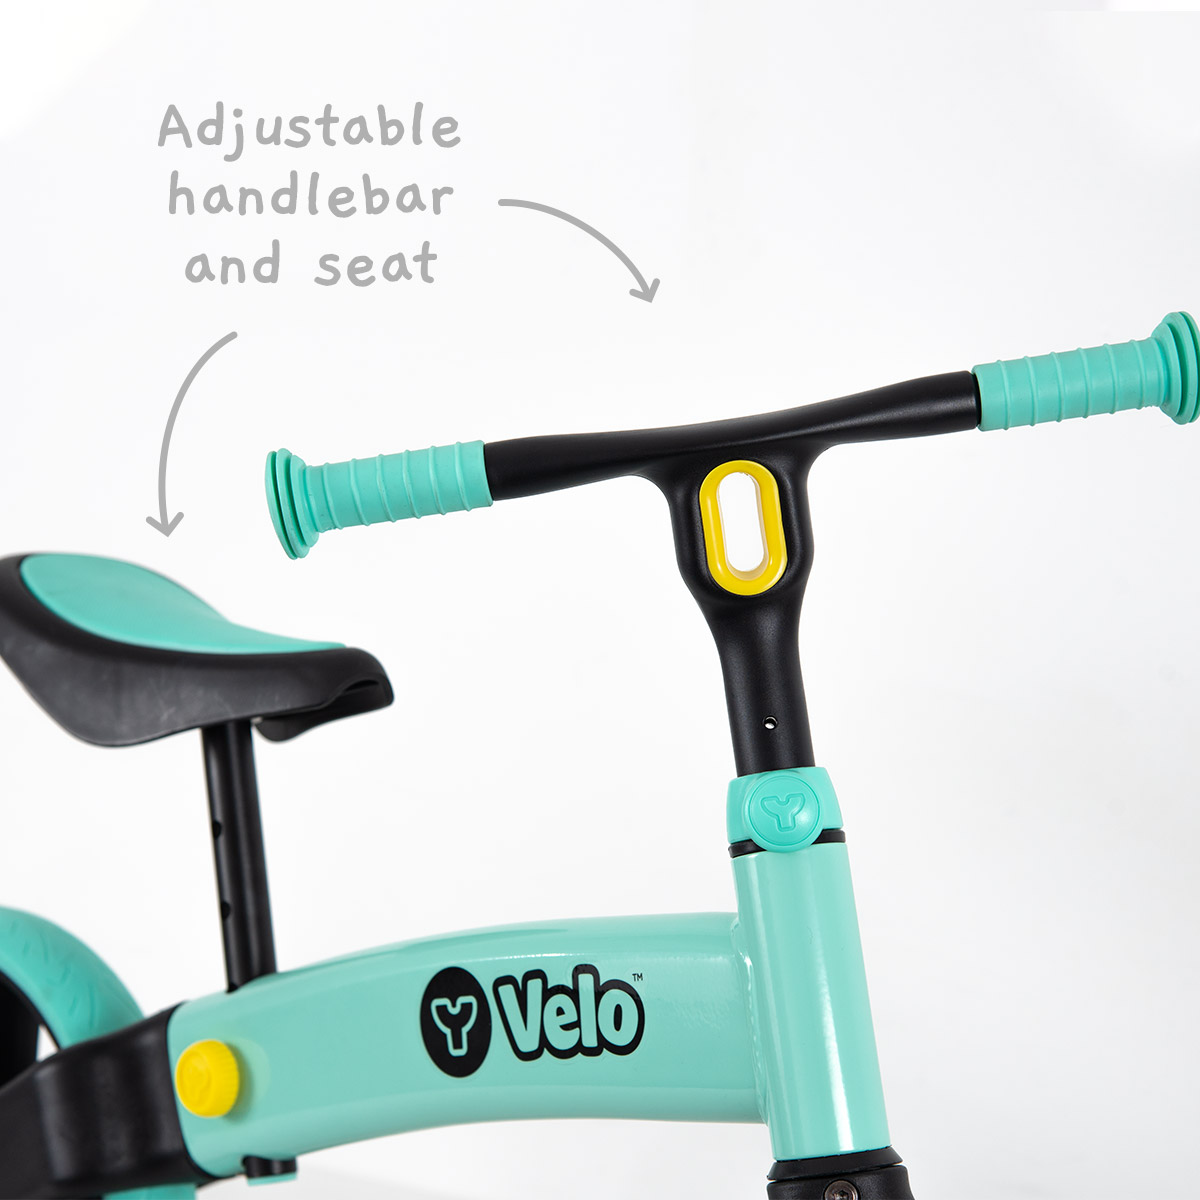 Adjustable seat and handle bar